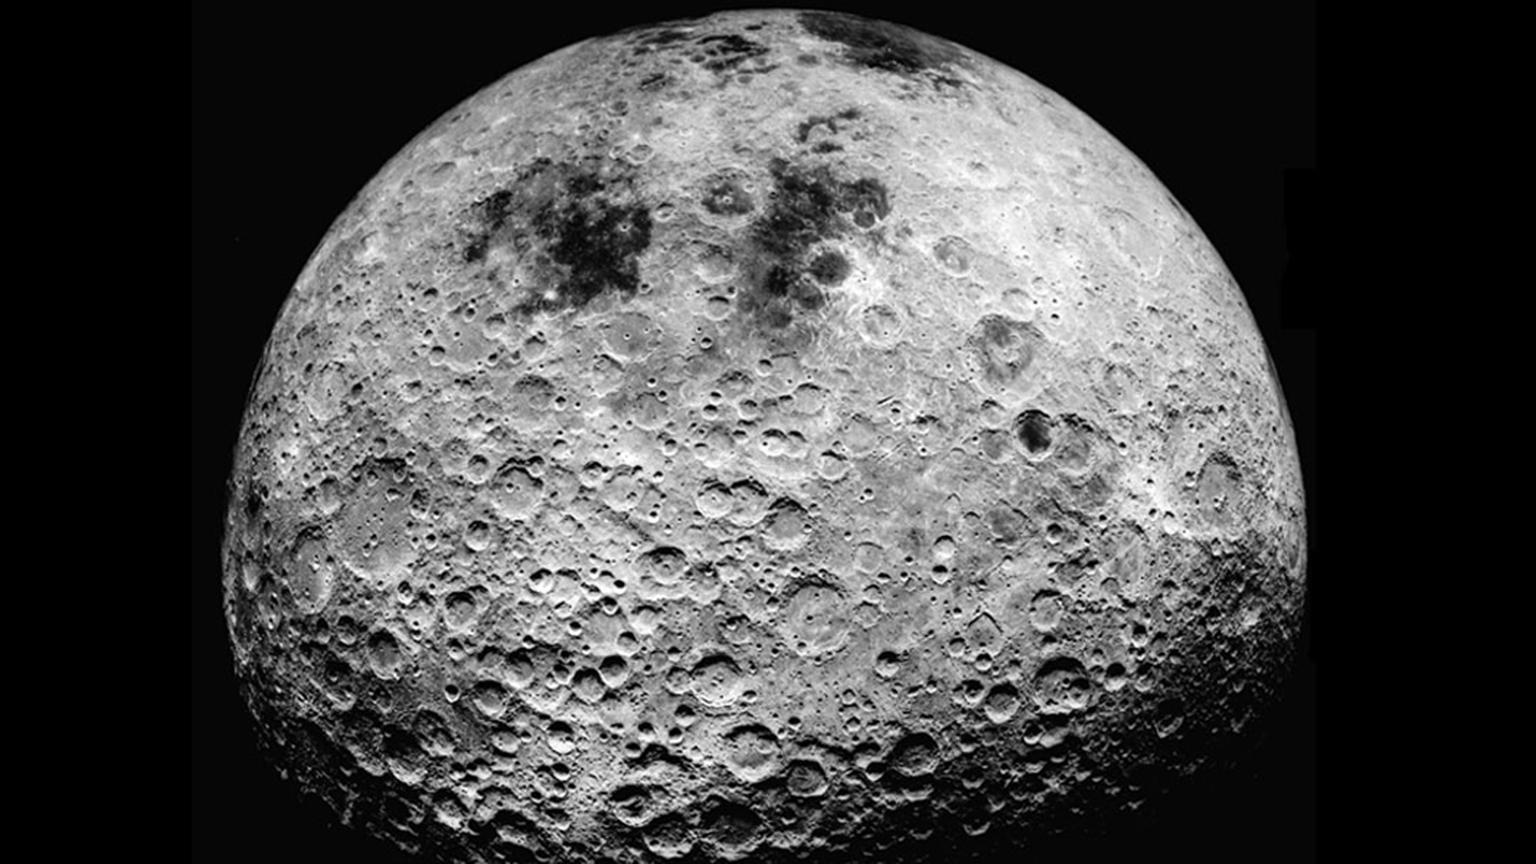 spacecraft in lunar orbit - photo #32